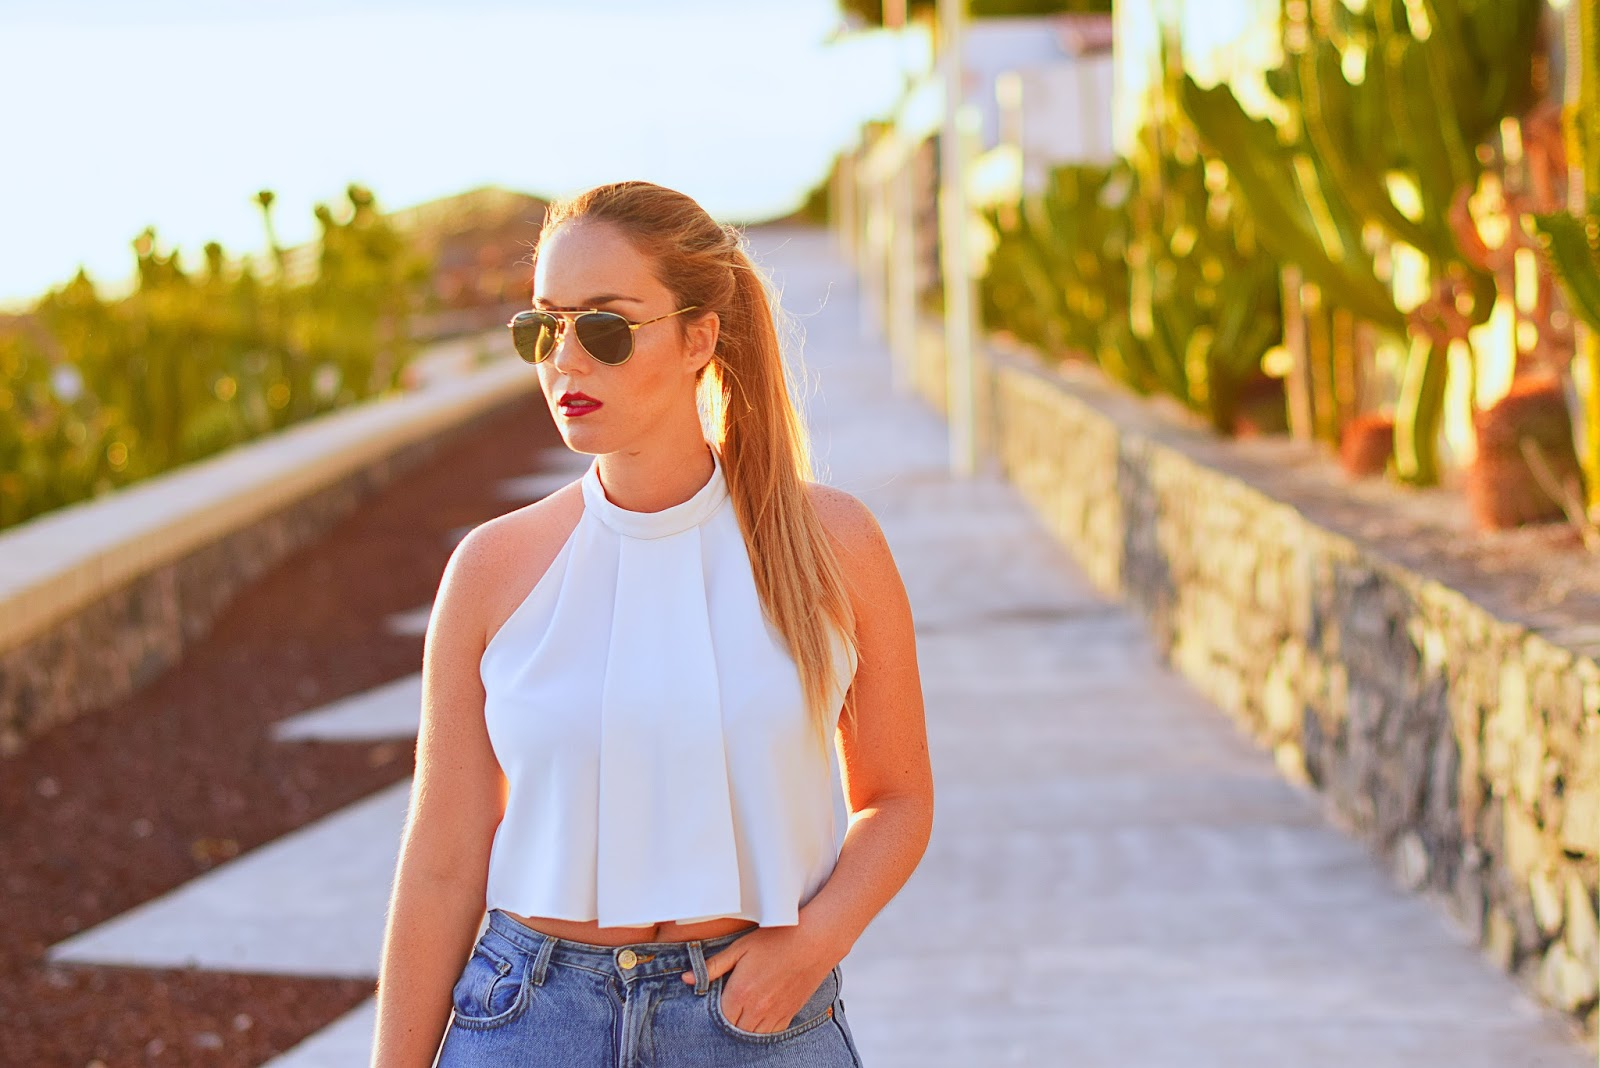 nery hdez, Hindsight Vintage , crop top, boyfriend jeans, aviator sunglasses, shoes with tassel , asos